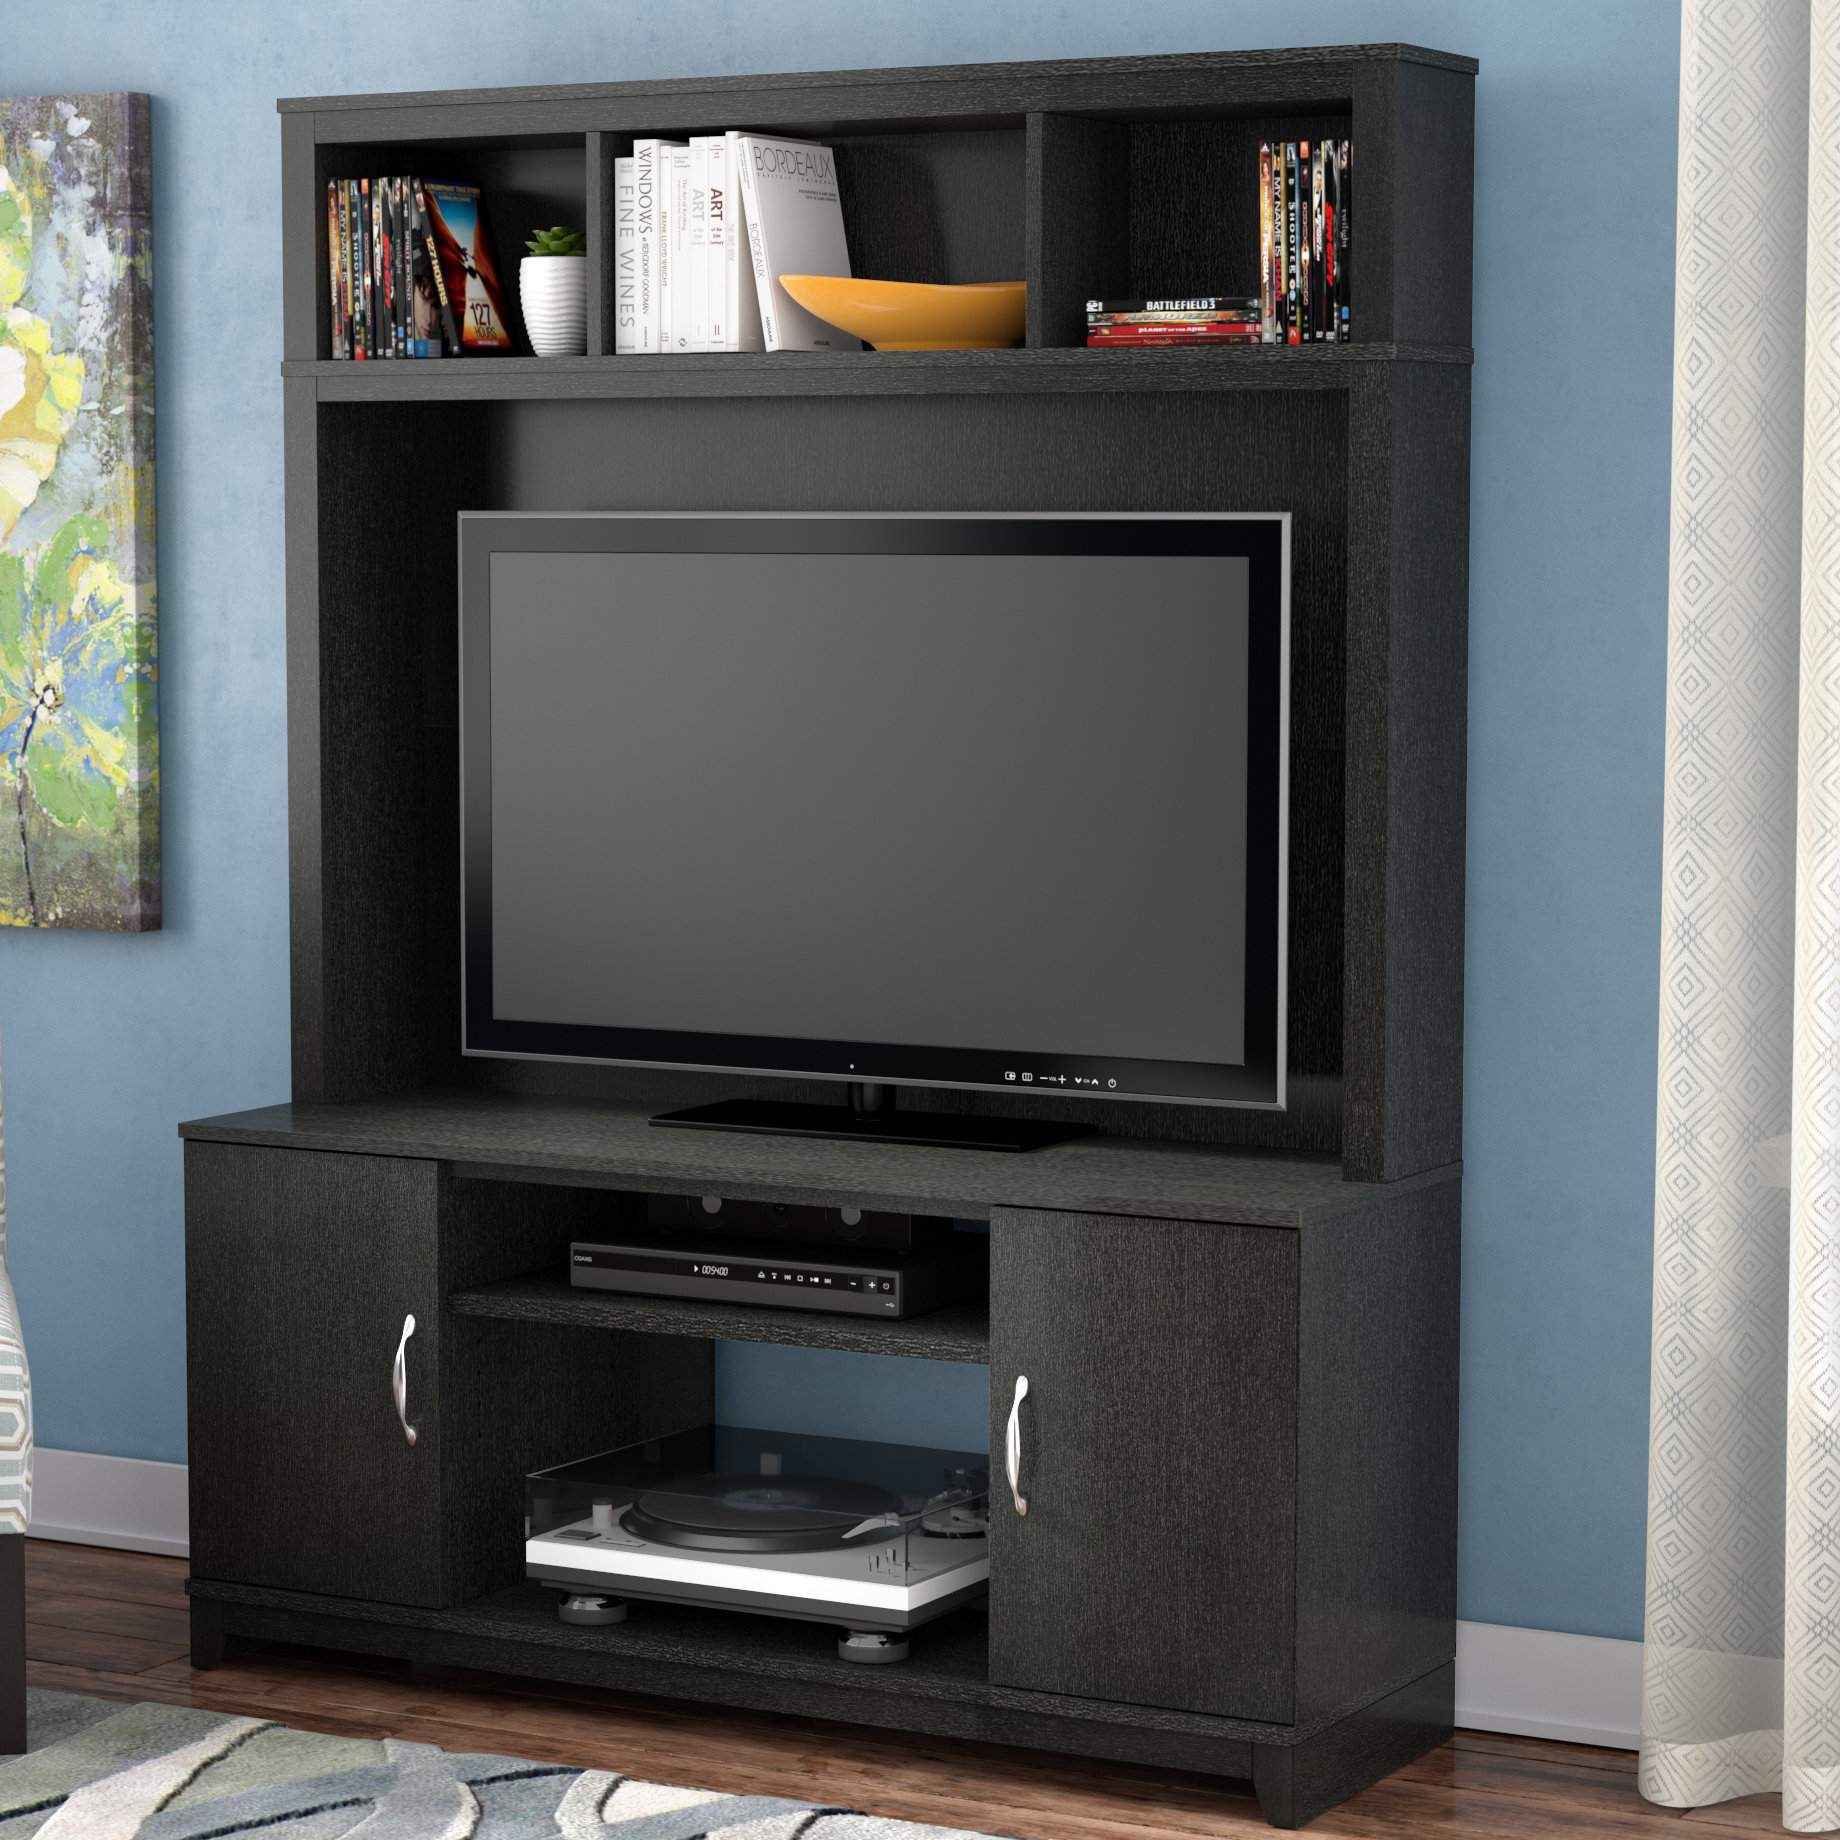 Tv Stands With Hutch You'll Love | Wayfair In Kilian Grey 60 Inch Tv Stands (View 5 of 30)